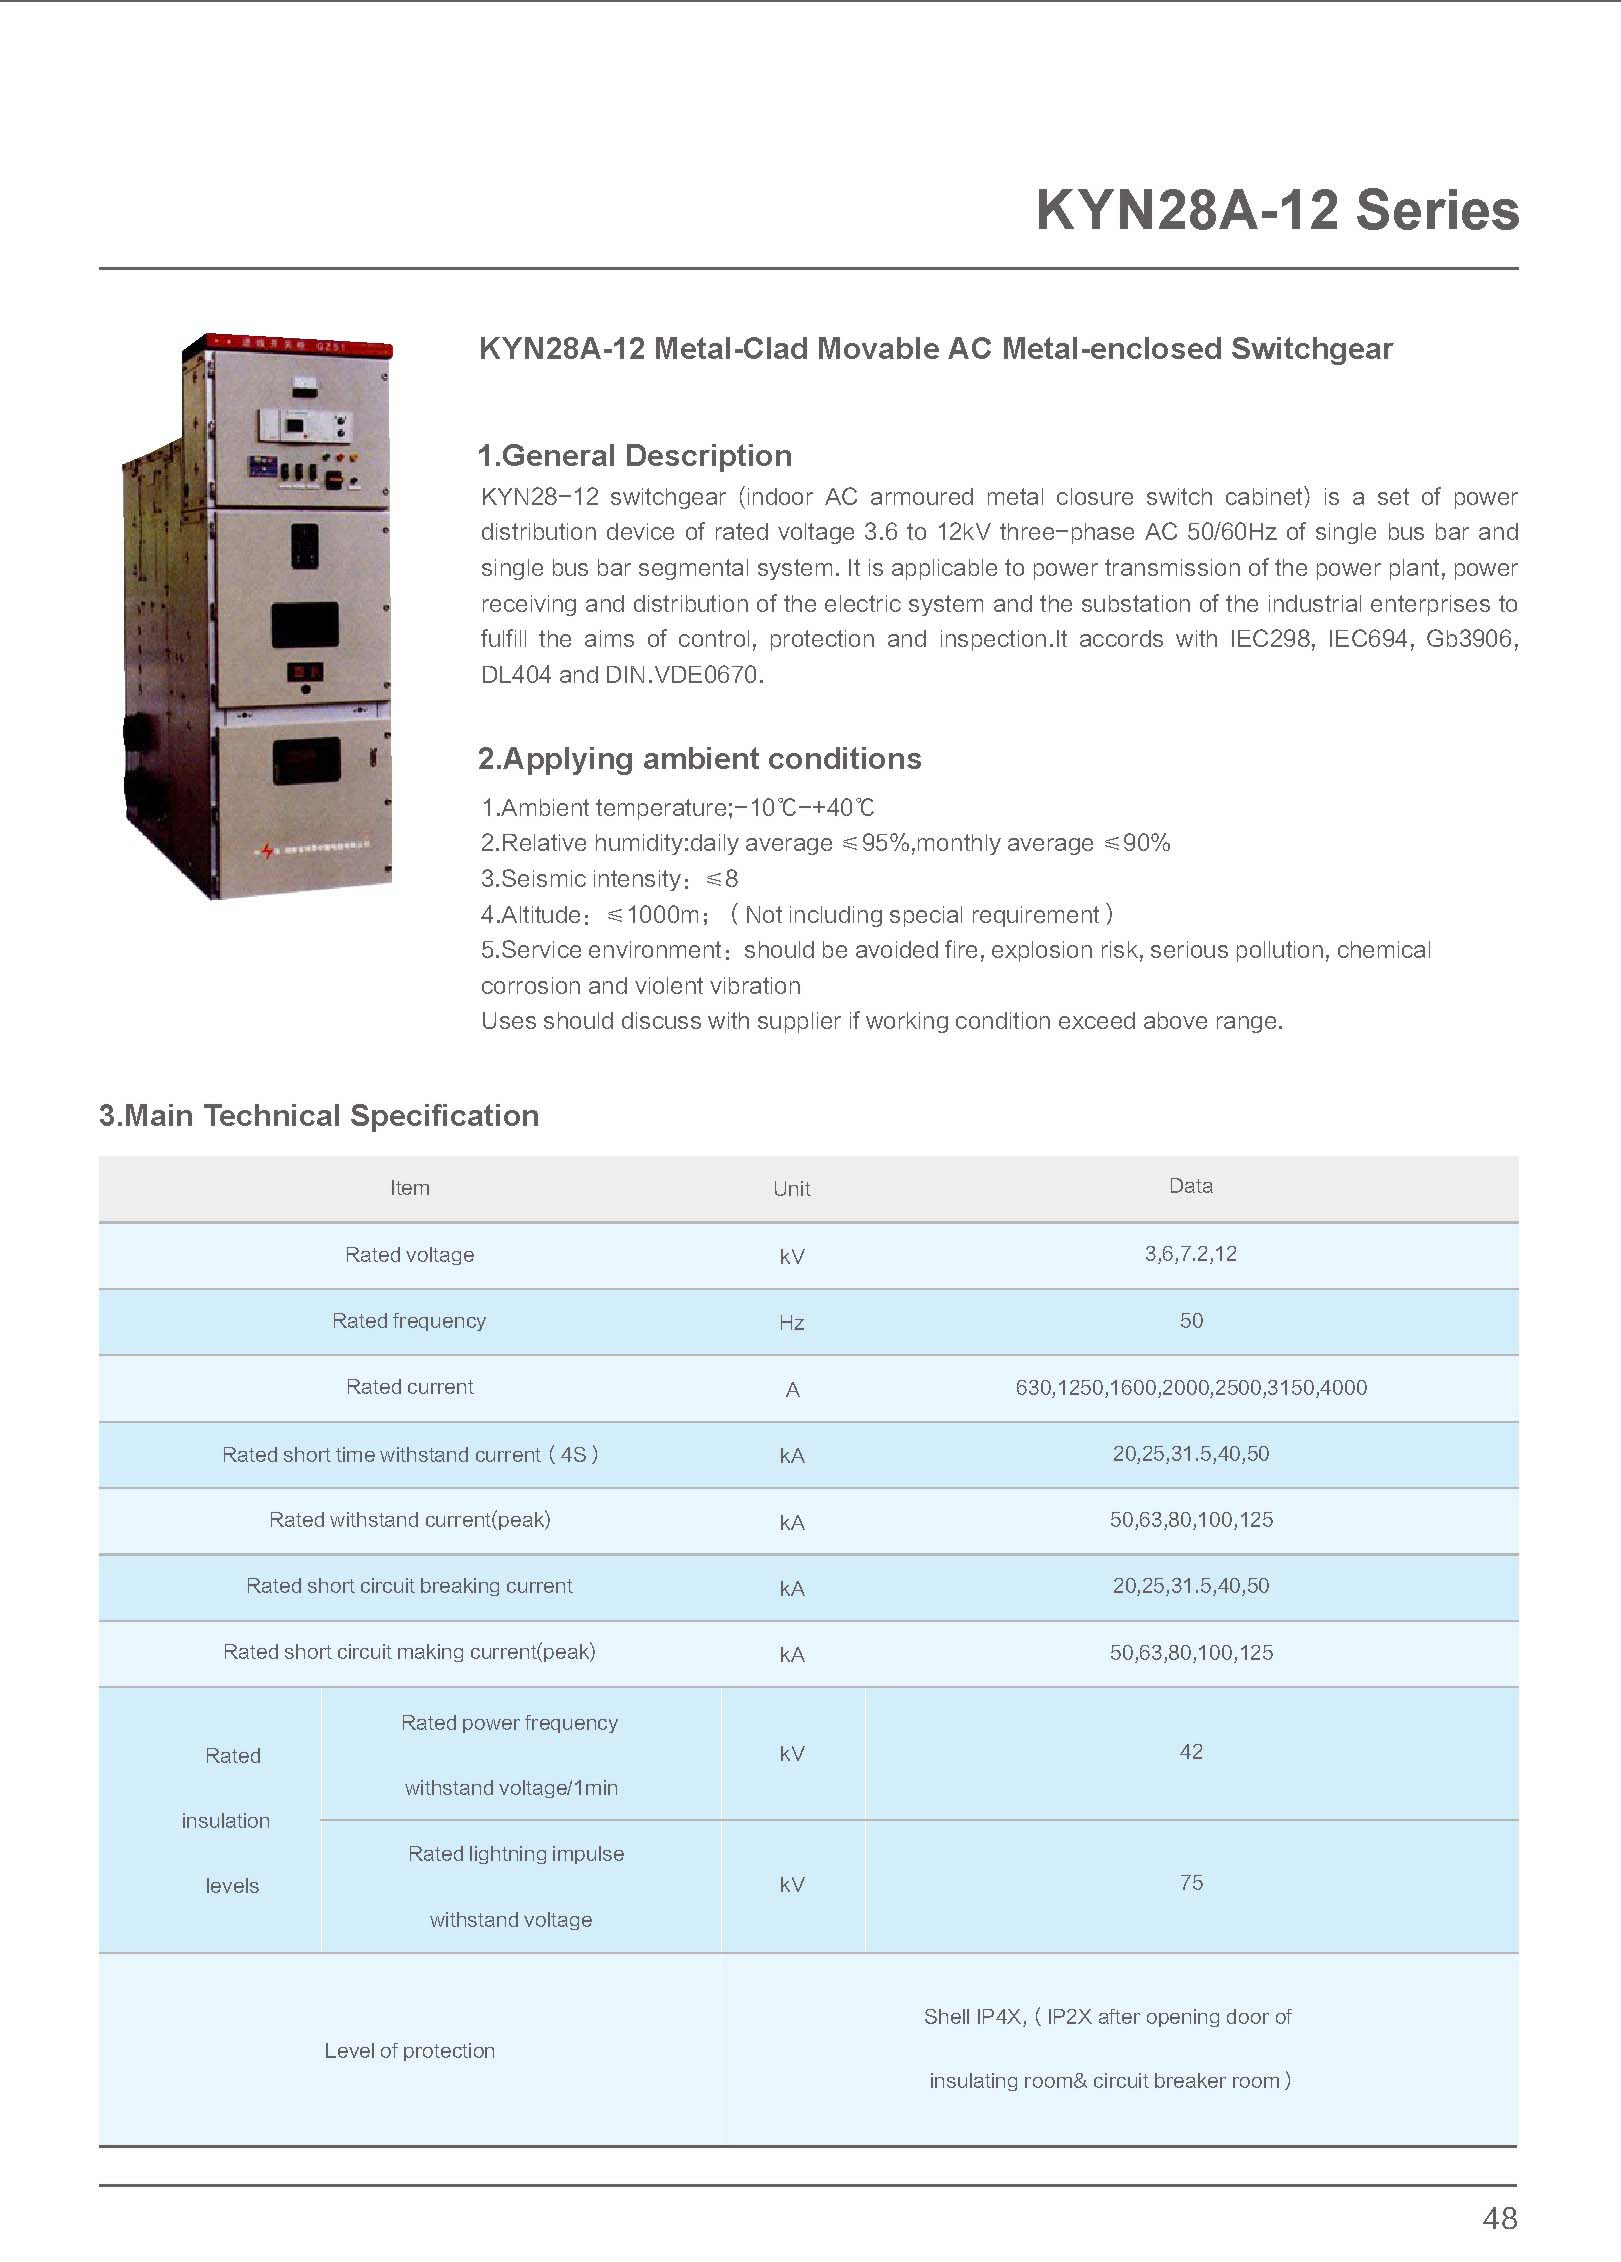 12kV Switchgear Technical Specification